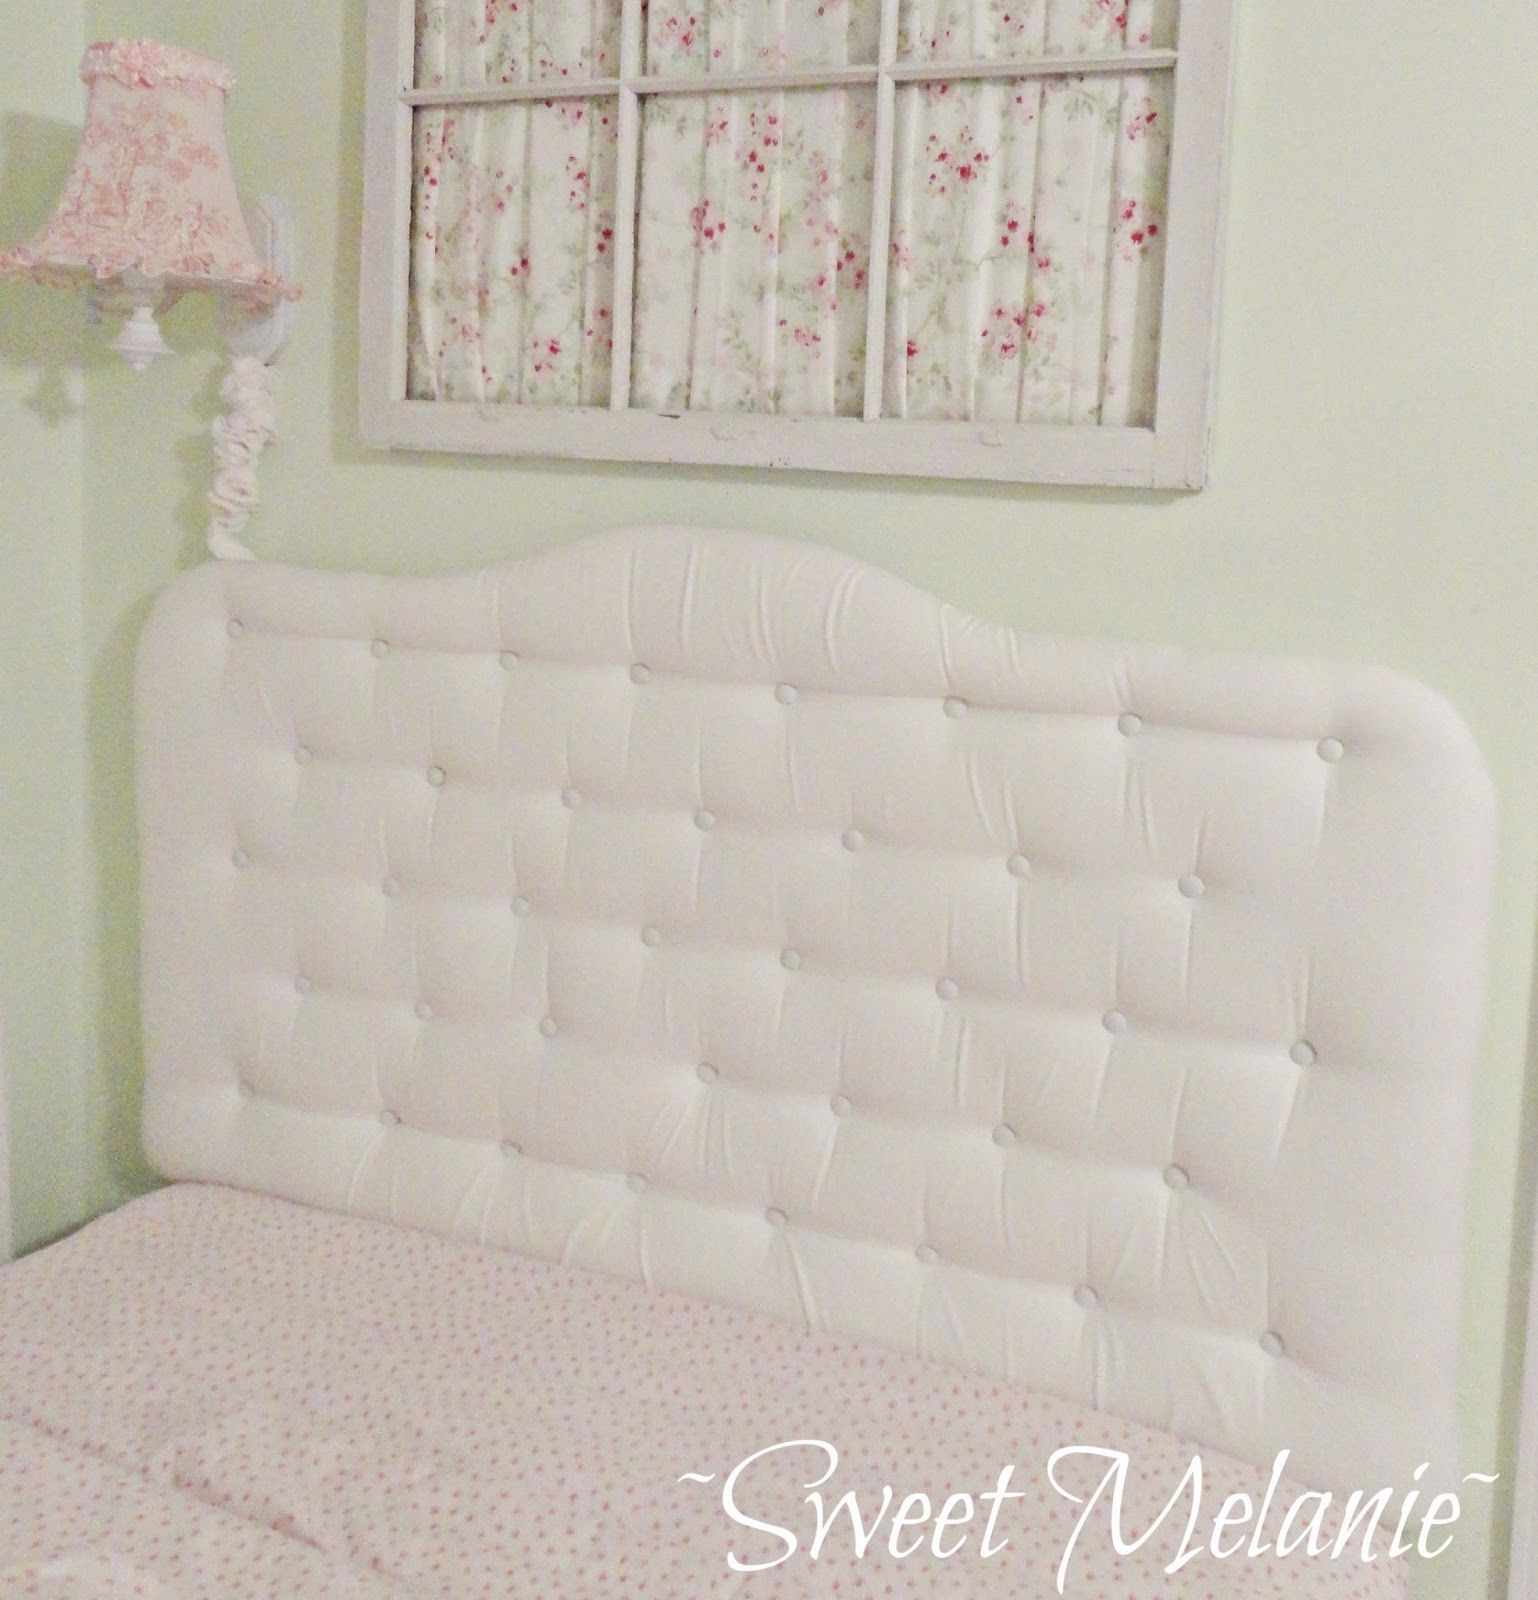 Furniture Logical Classic White Leather Accent Storage Bench With Tufted Crystal Studs Blanket Bed Moderate Cost